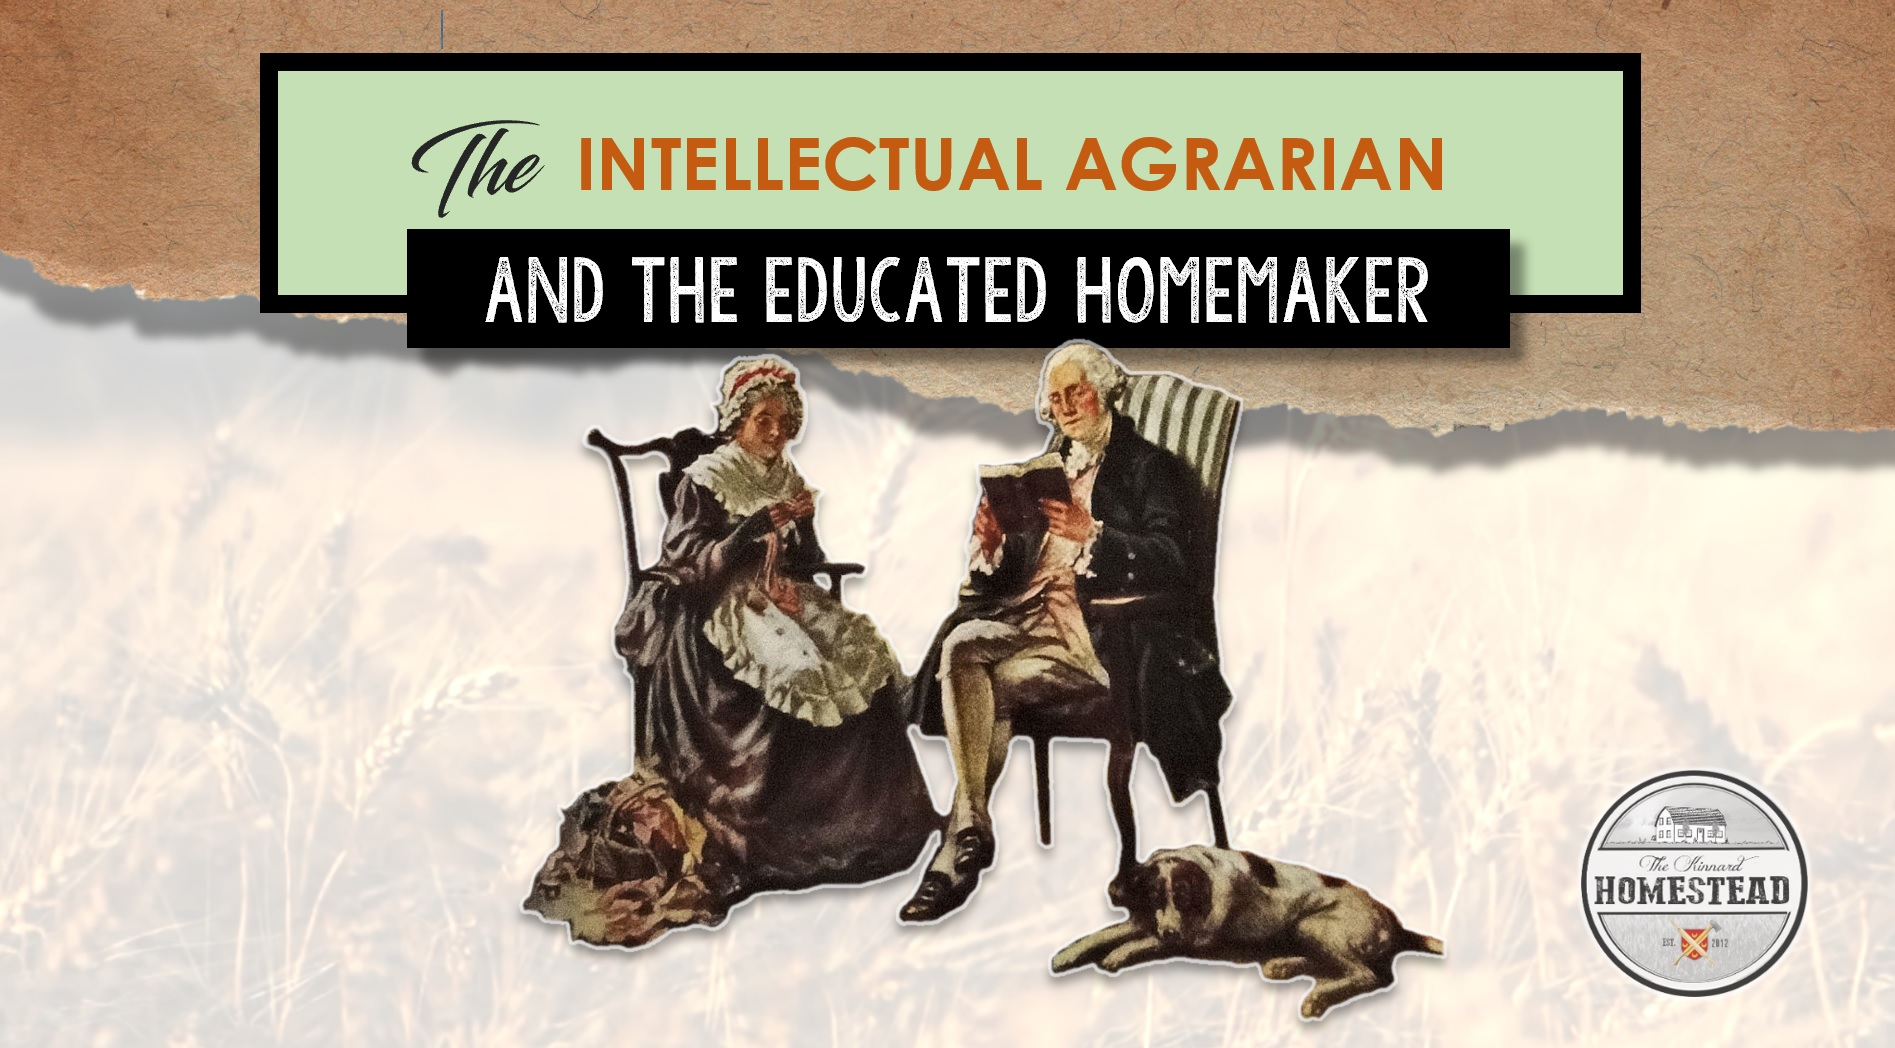 The Intellectual Agrarian and the Educated Homemaker